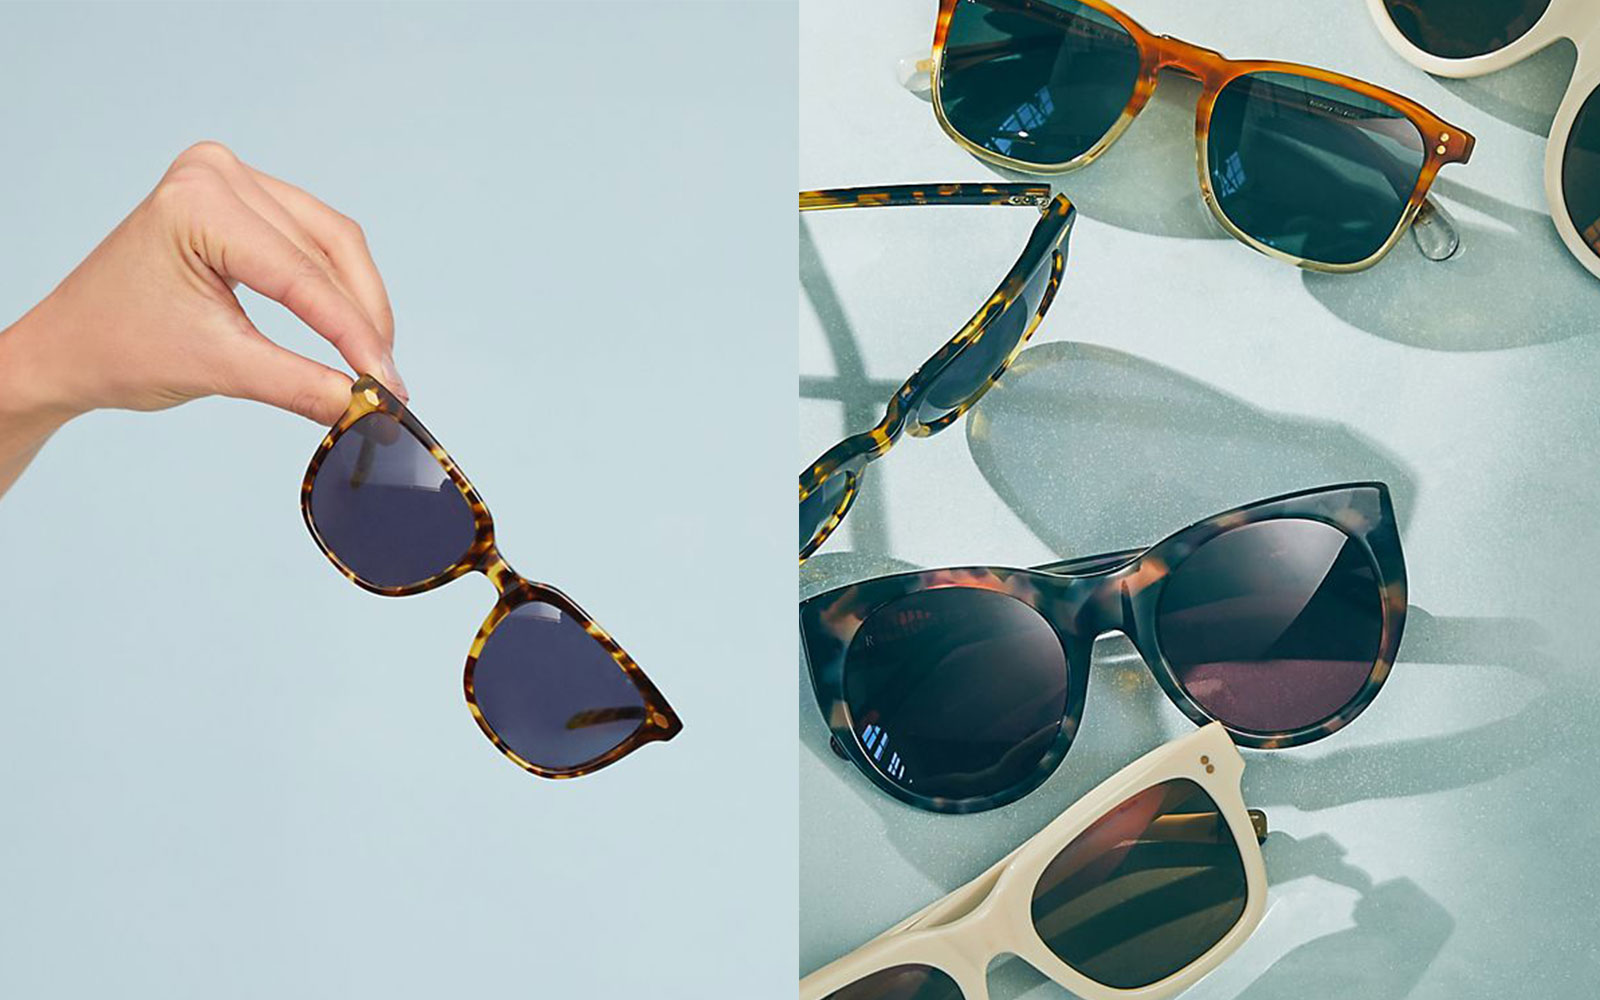 Sunglasses from Anthropologie